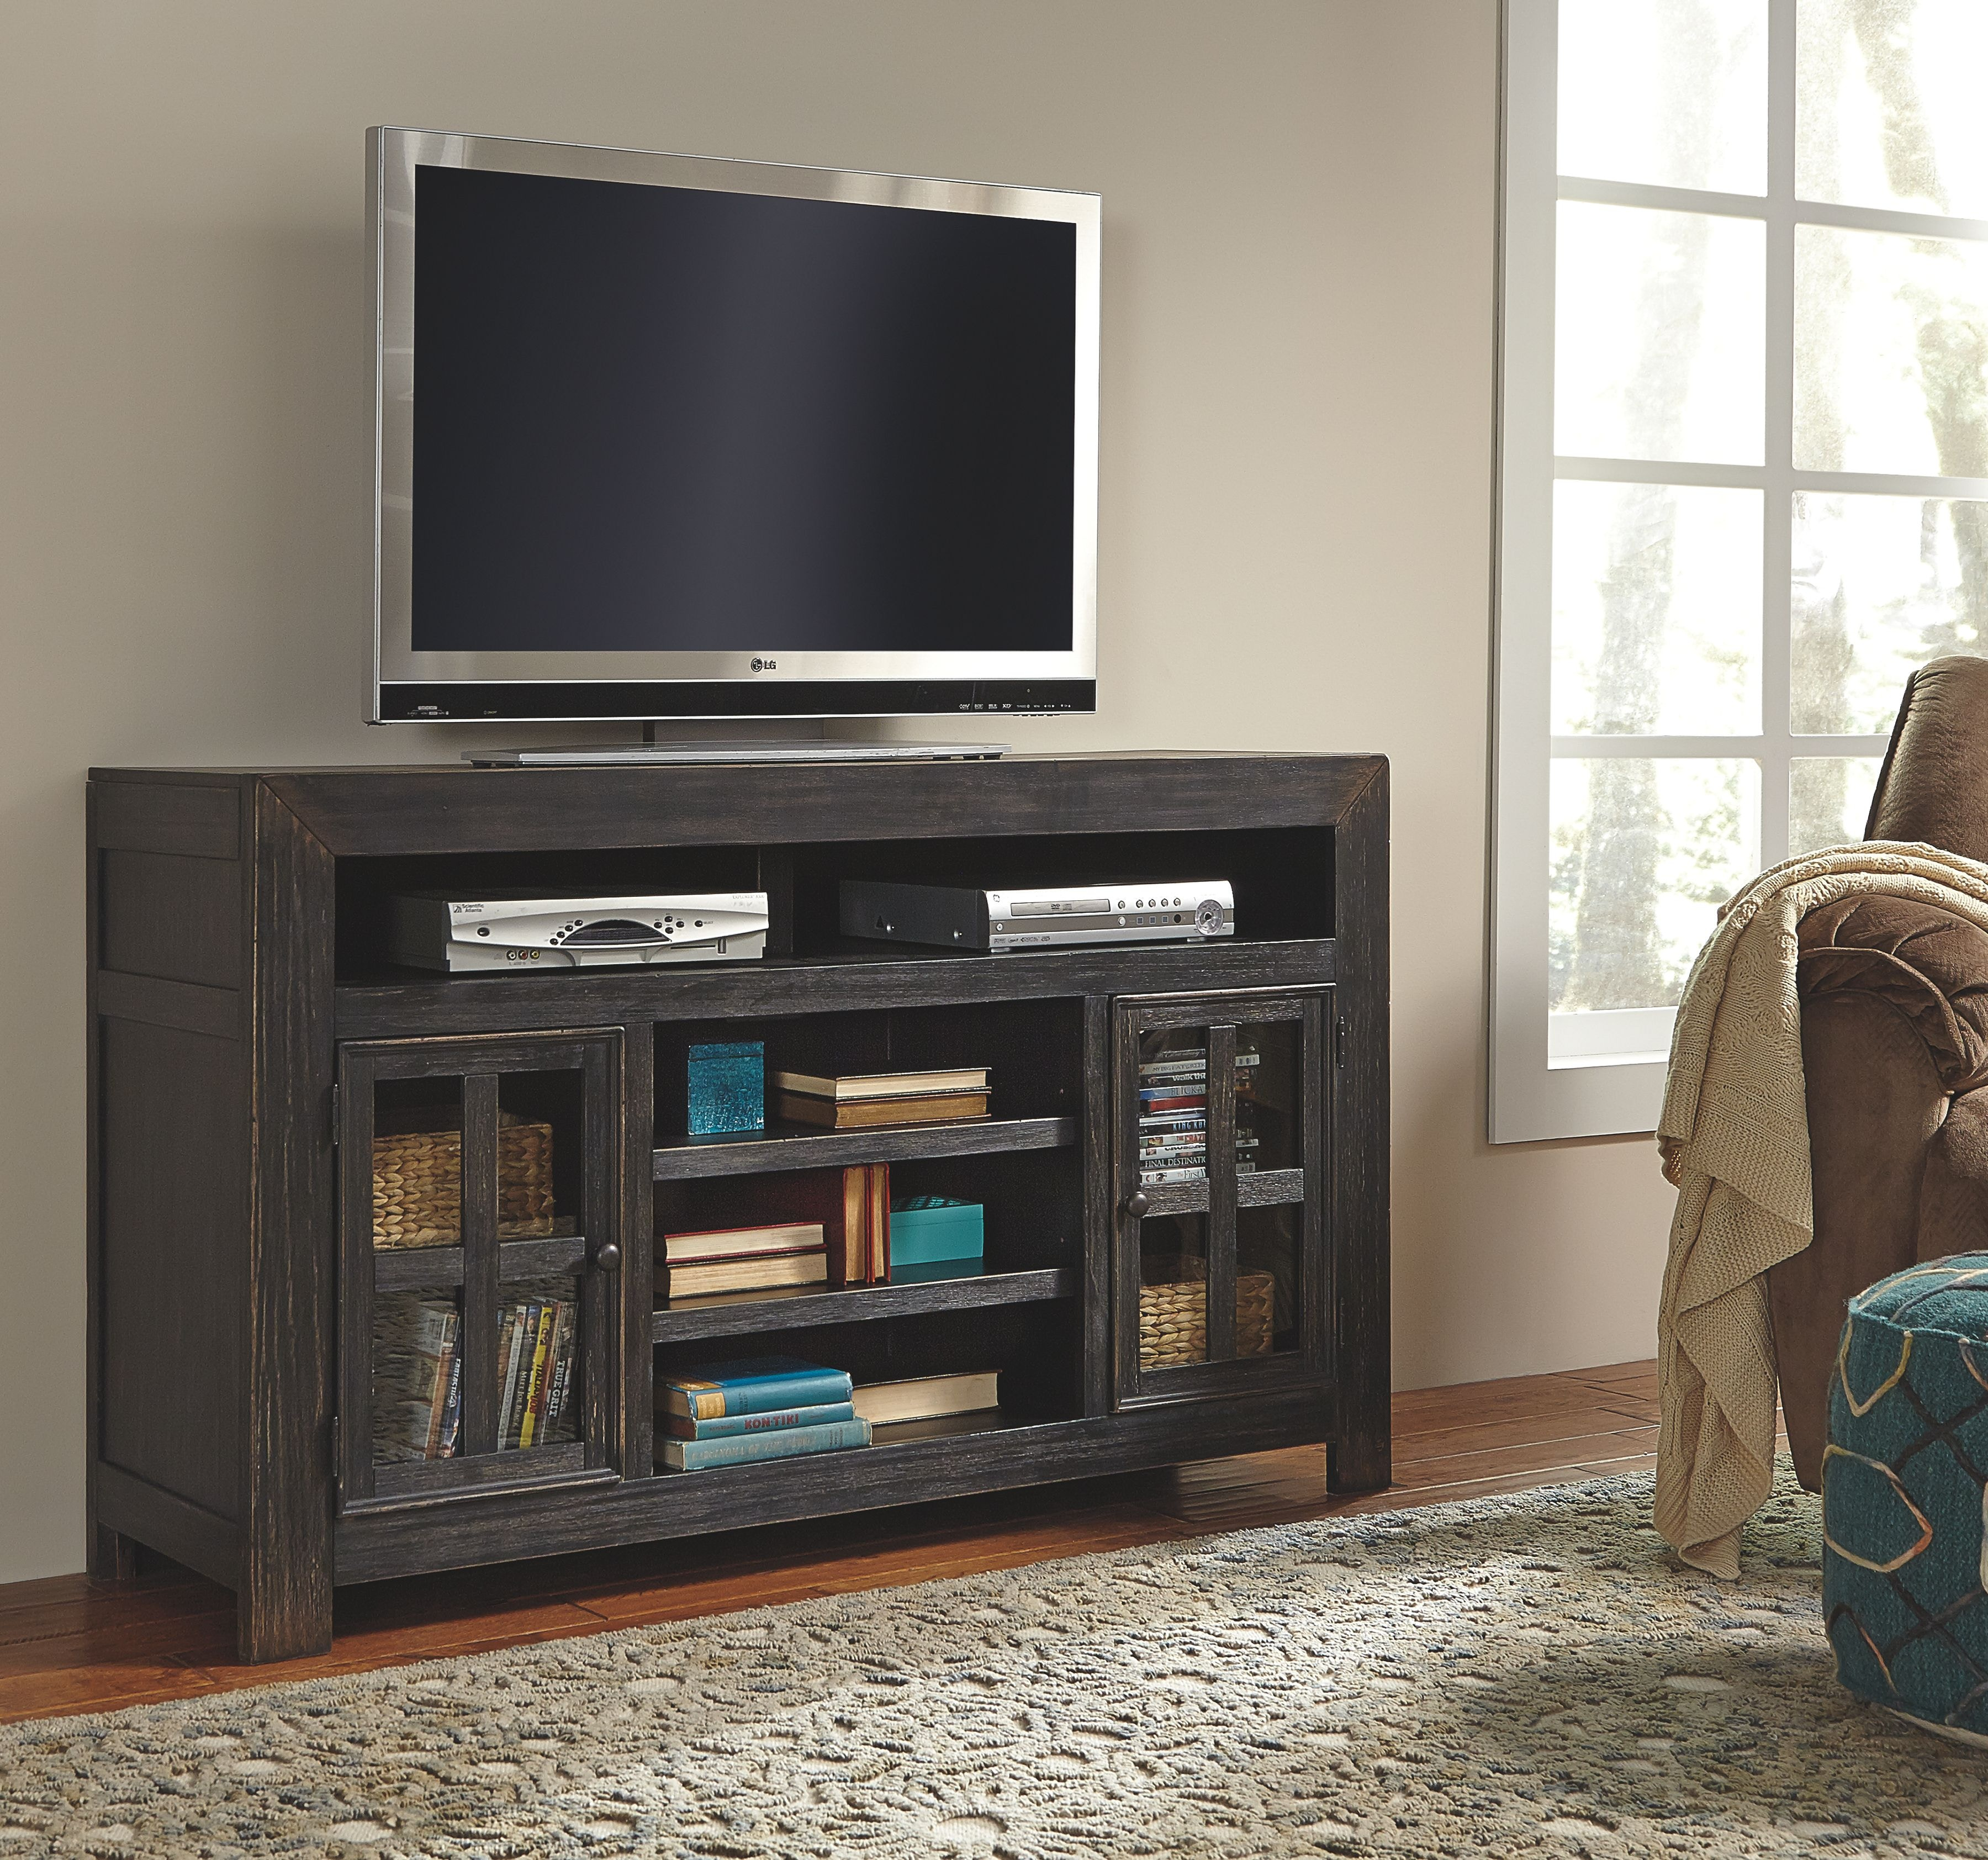 Signature Design By Ashley Lg Tv Stand W Fireplace Option On Sale At